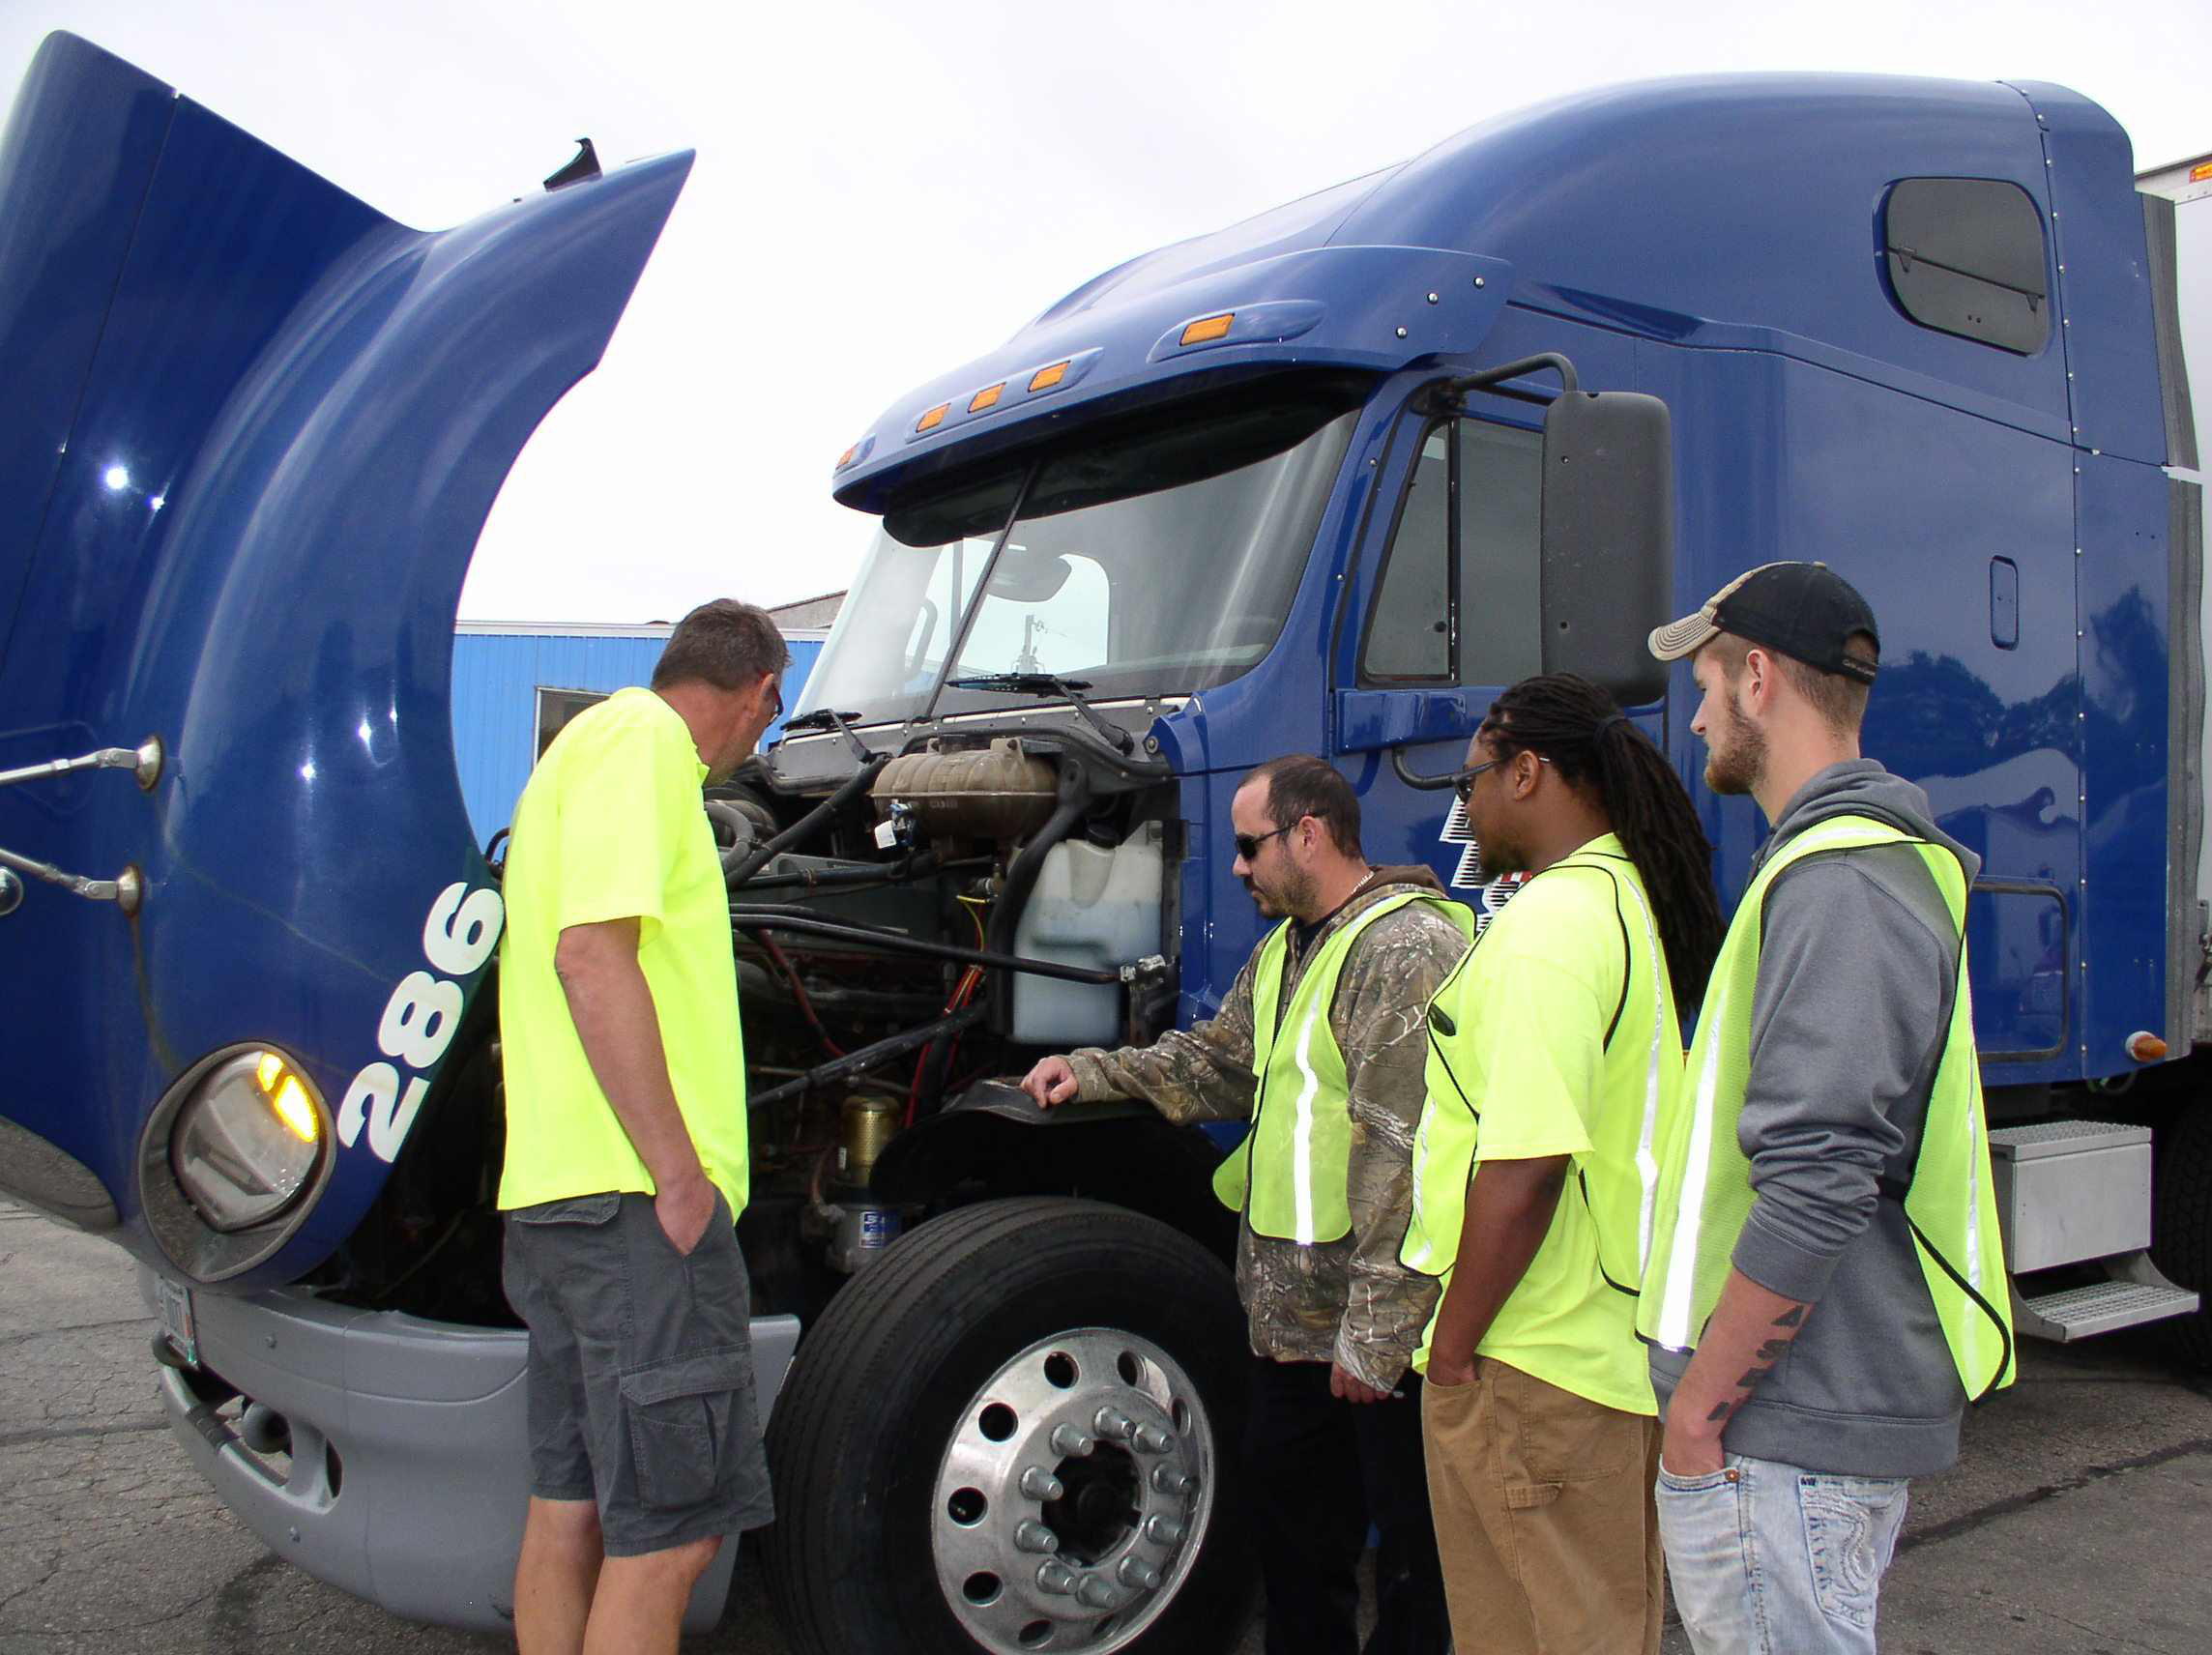 FMCSA implements new requirements for pre-CDL training